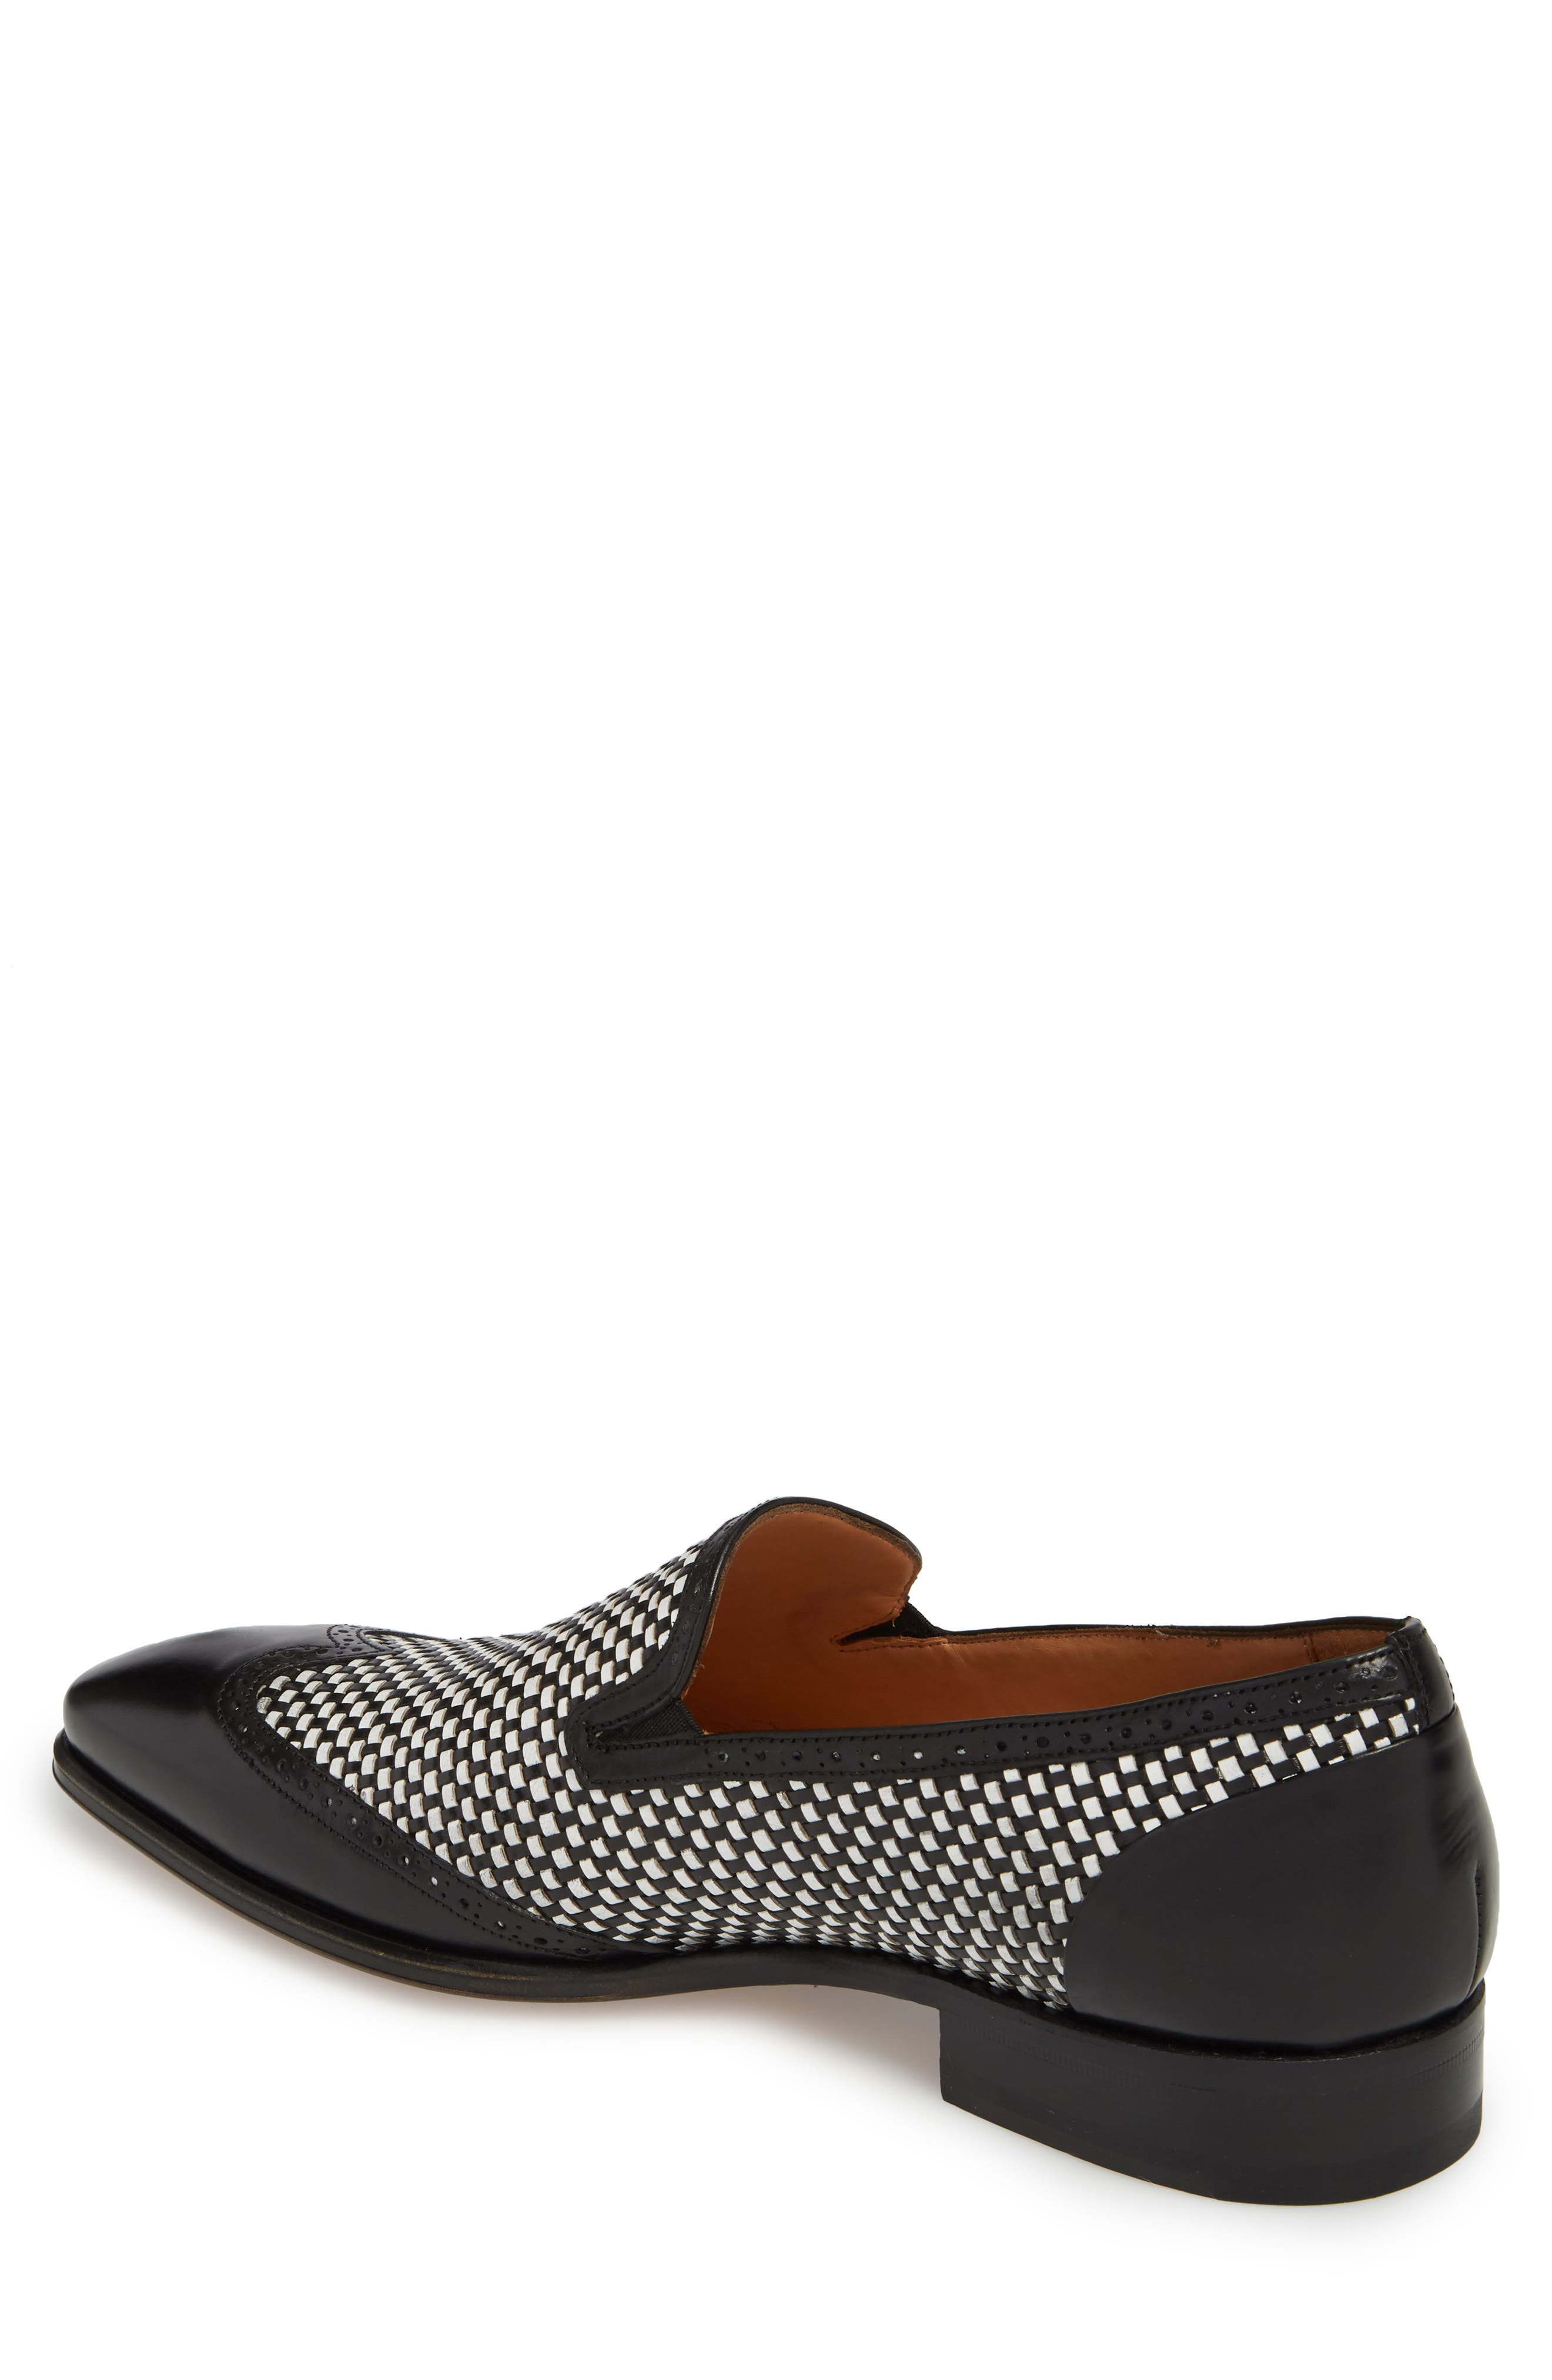 Nepos Woven Wingtip Loafer,                             Alternate thumbnail 2, color,                             Black/ White Leather